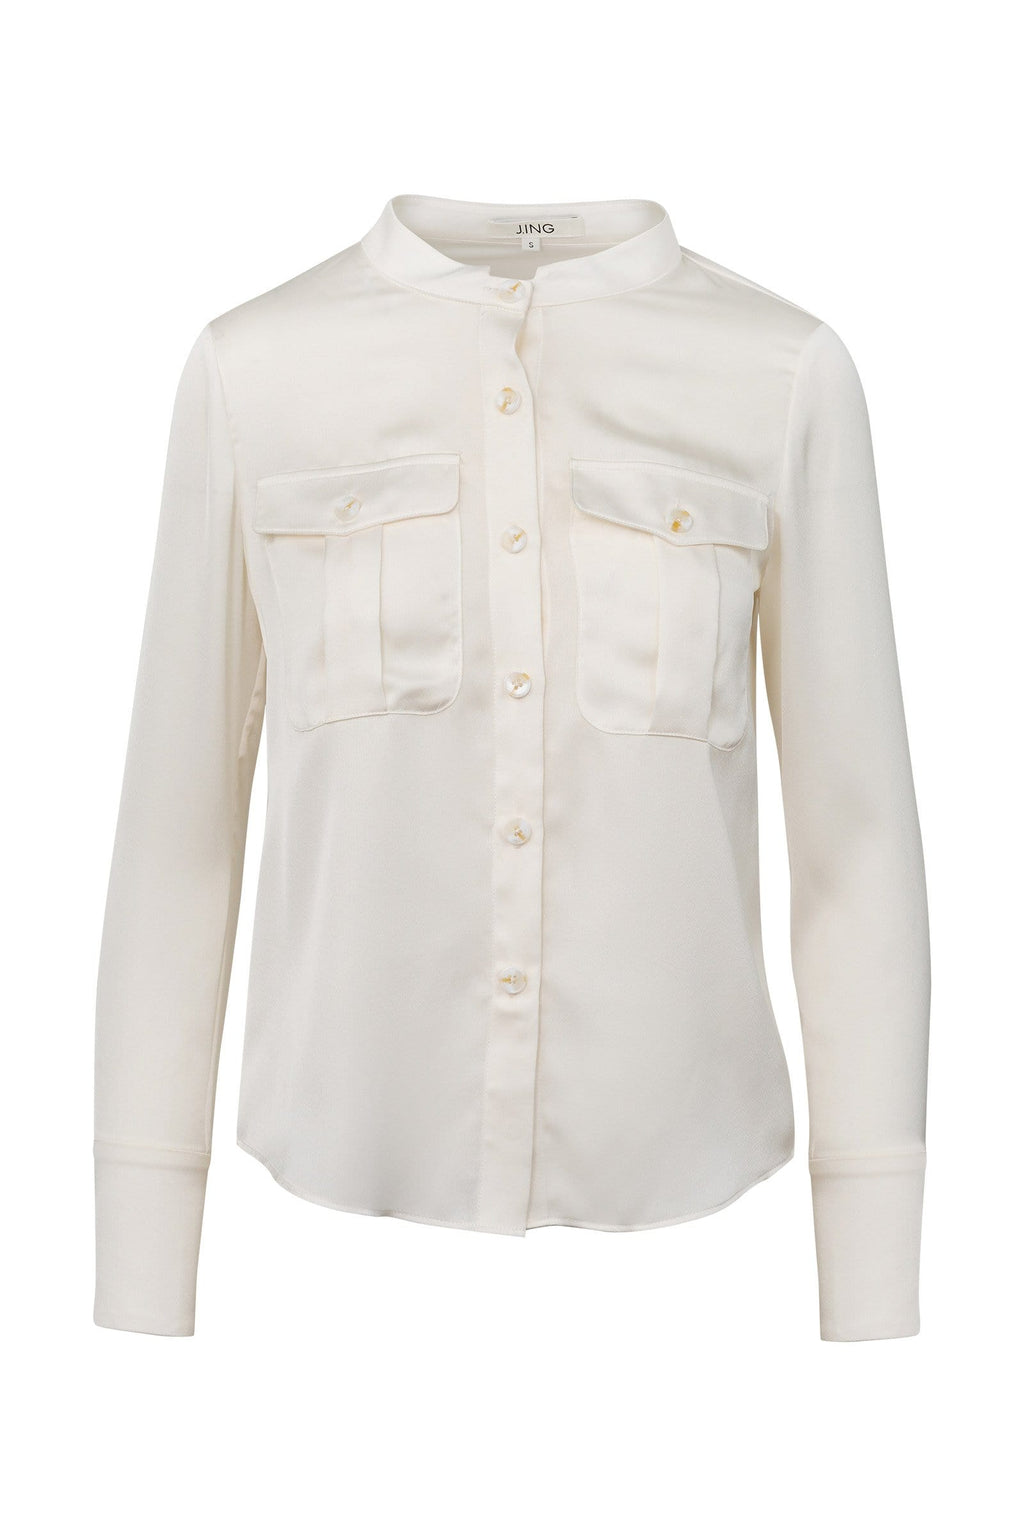 Colleen White Collarless Blouse by J.ING